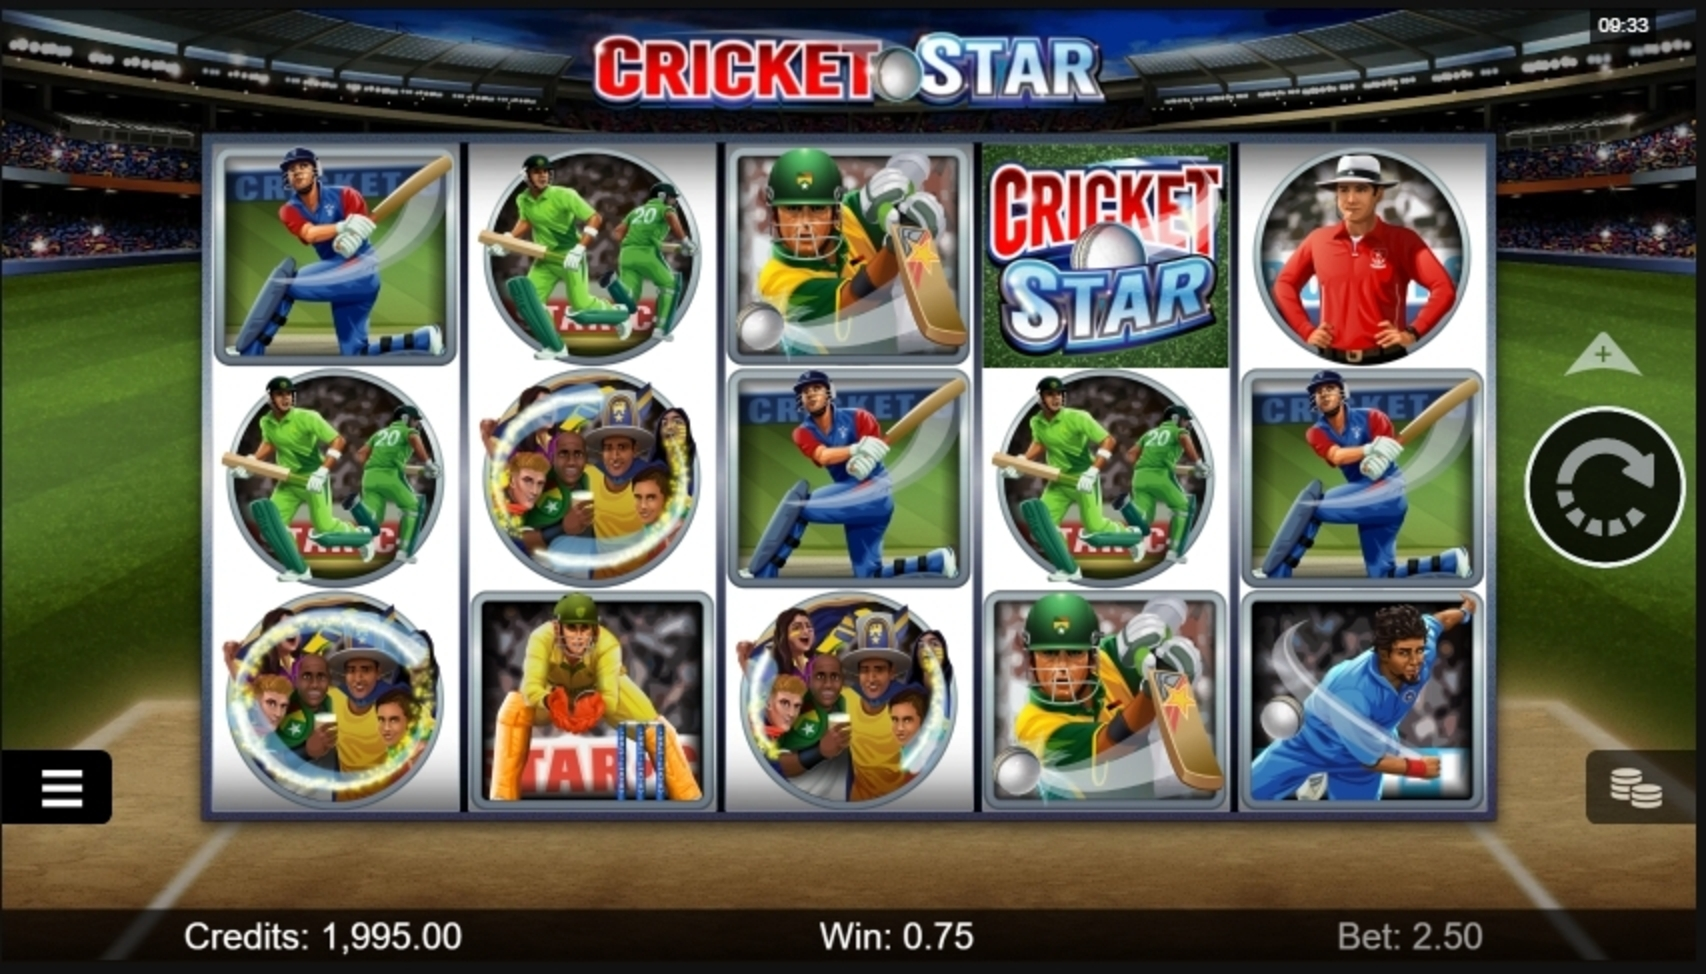 Win Money in Cricket Star Free Slot Game by Microgaming